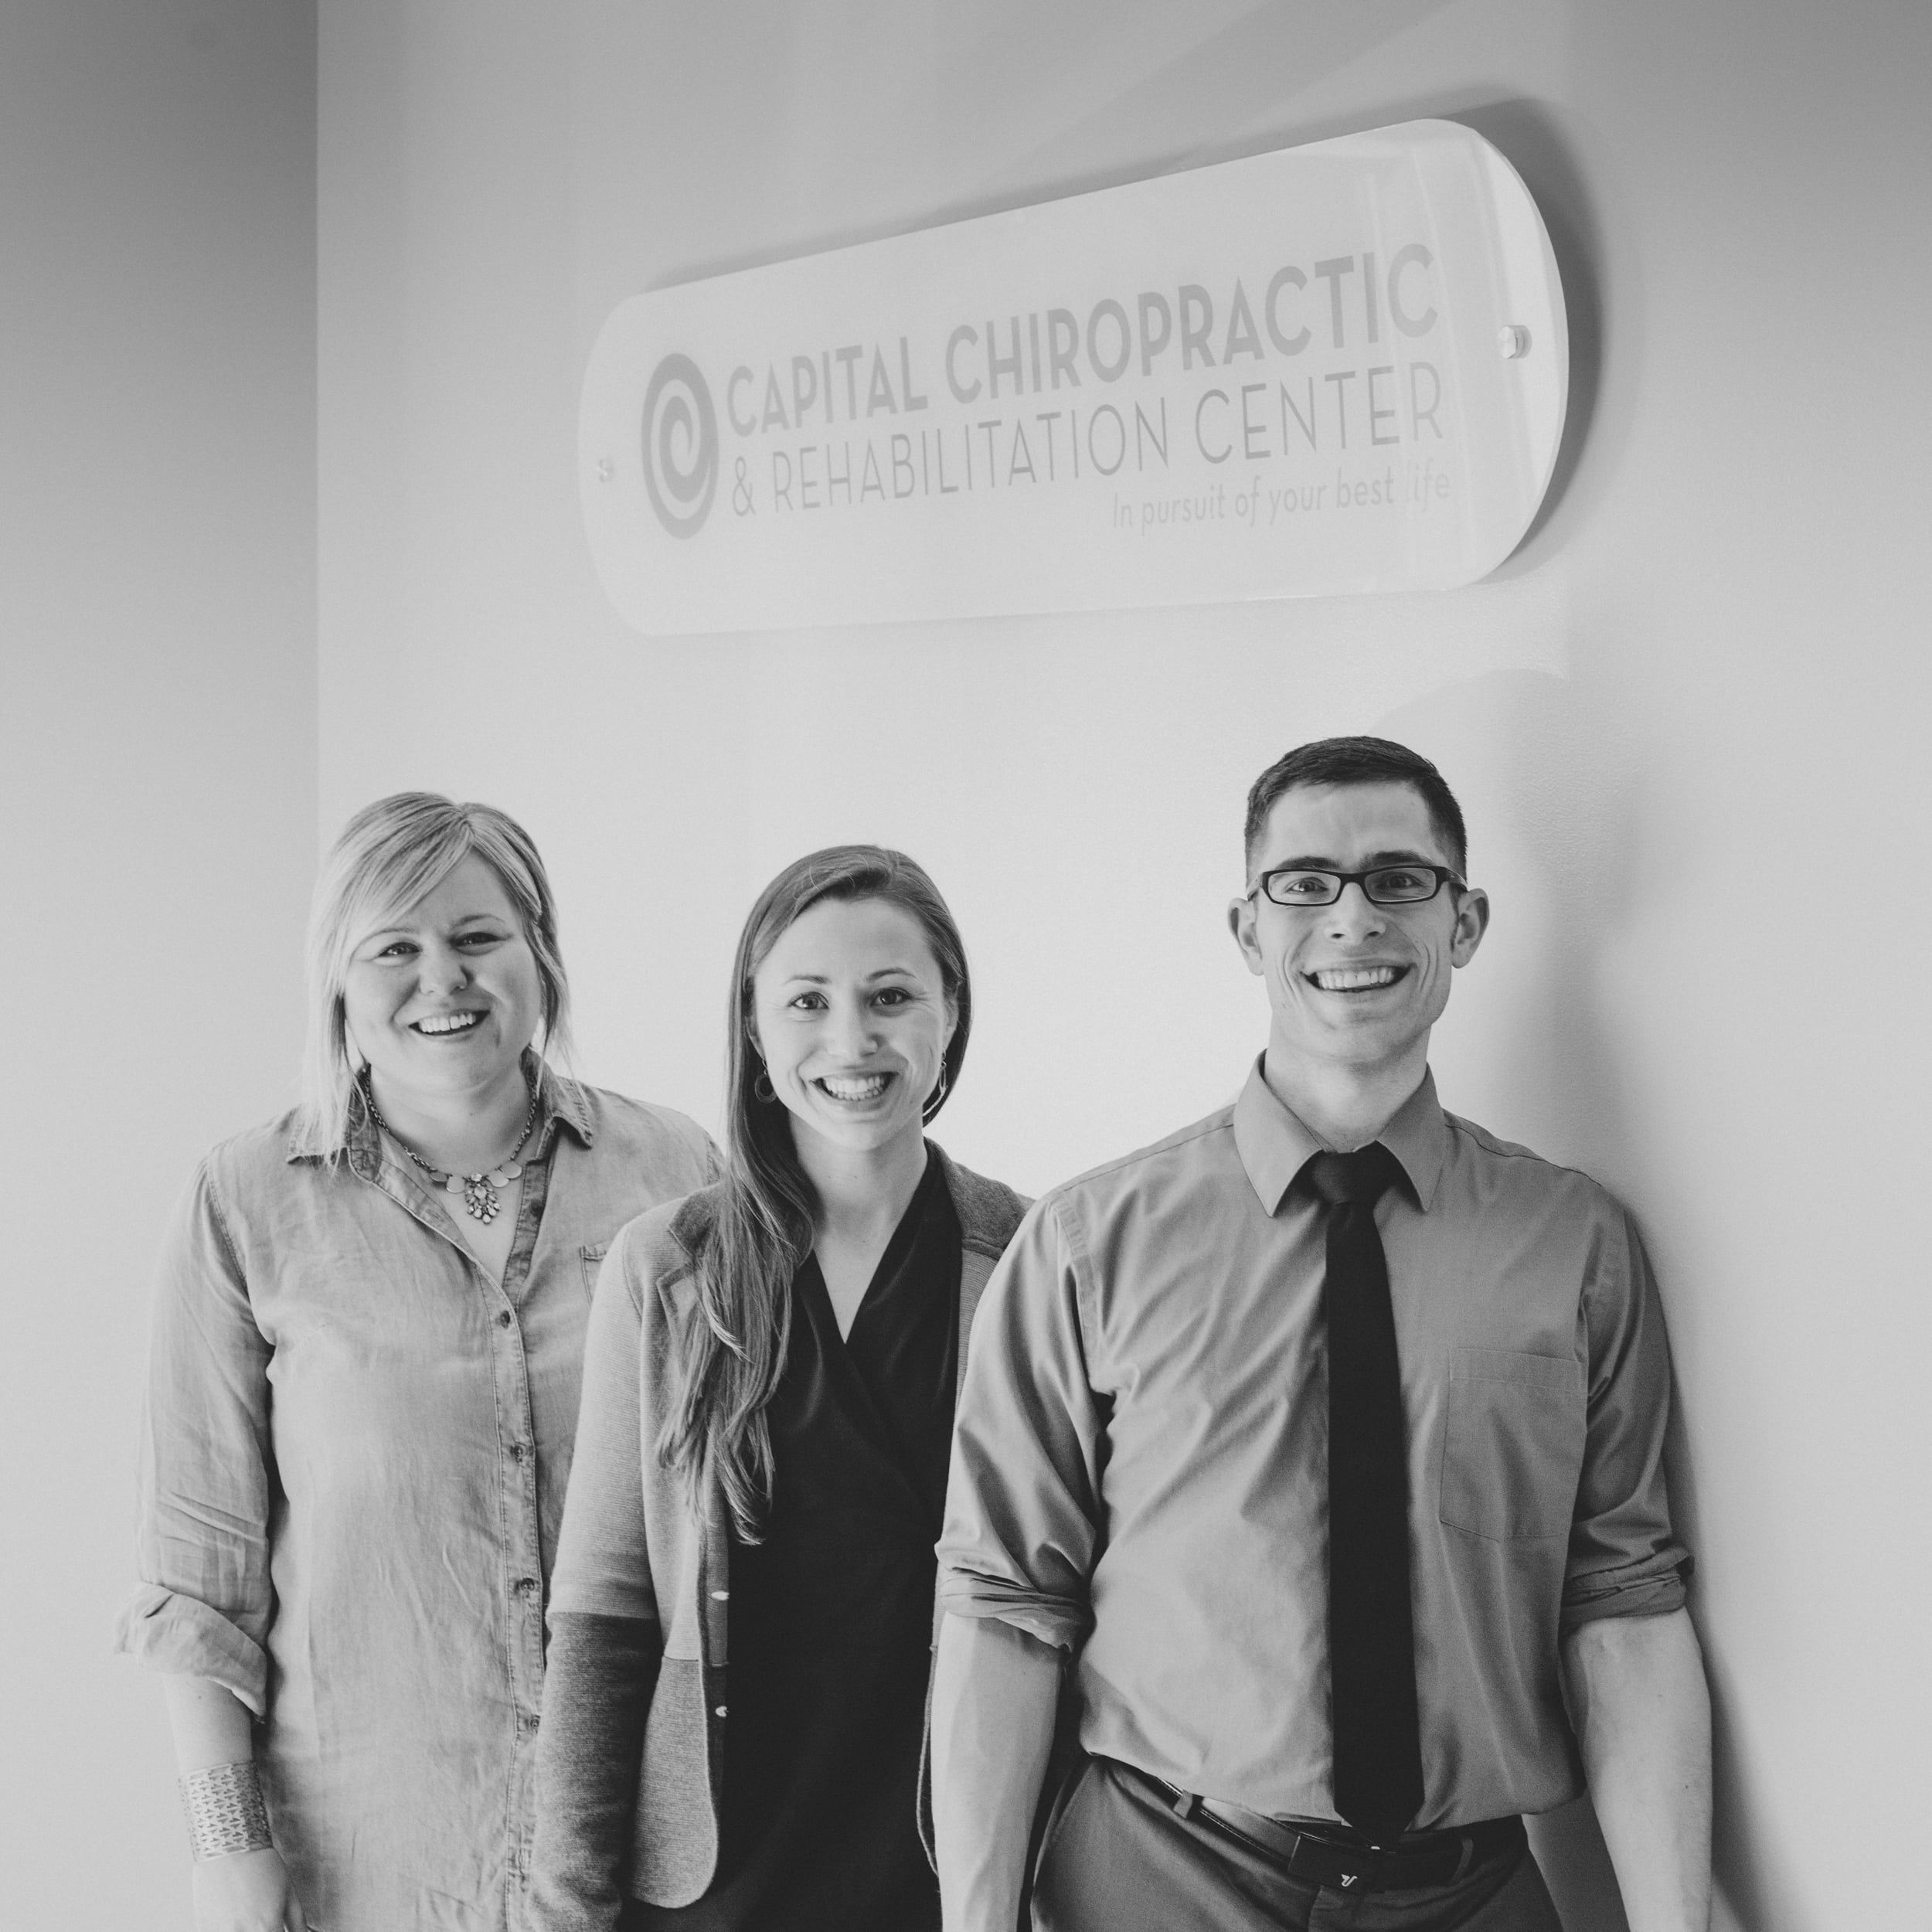 The Capital Chiropractic crew (from left to right): Jen Morrow, Abbie Sawyer, and Dr. Chris LoRang